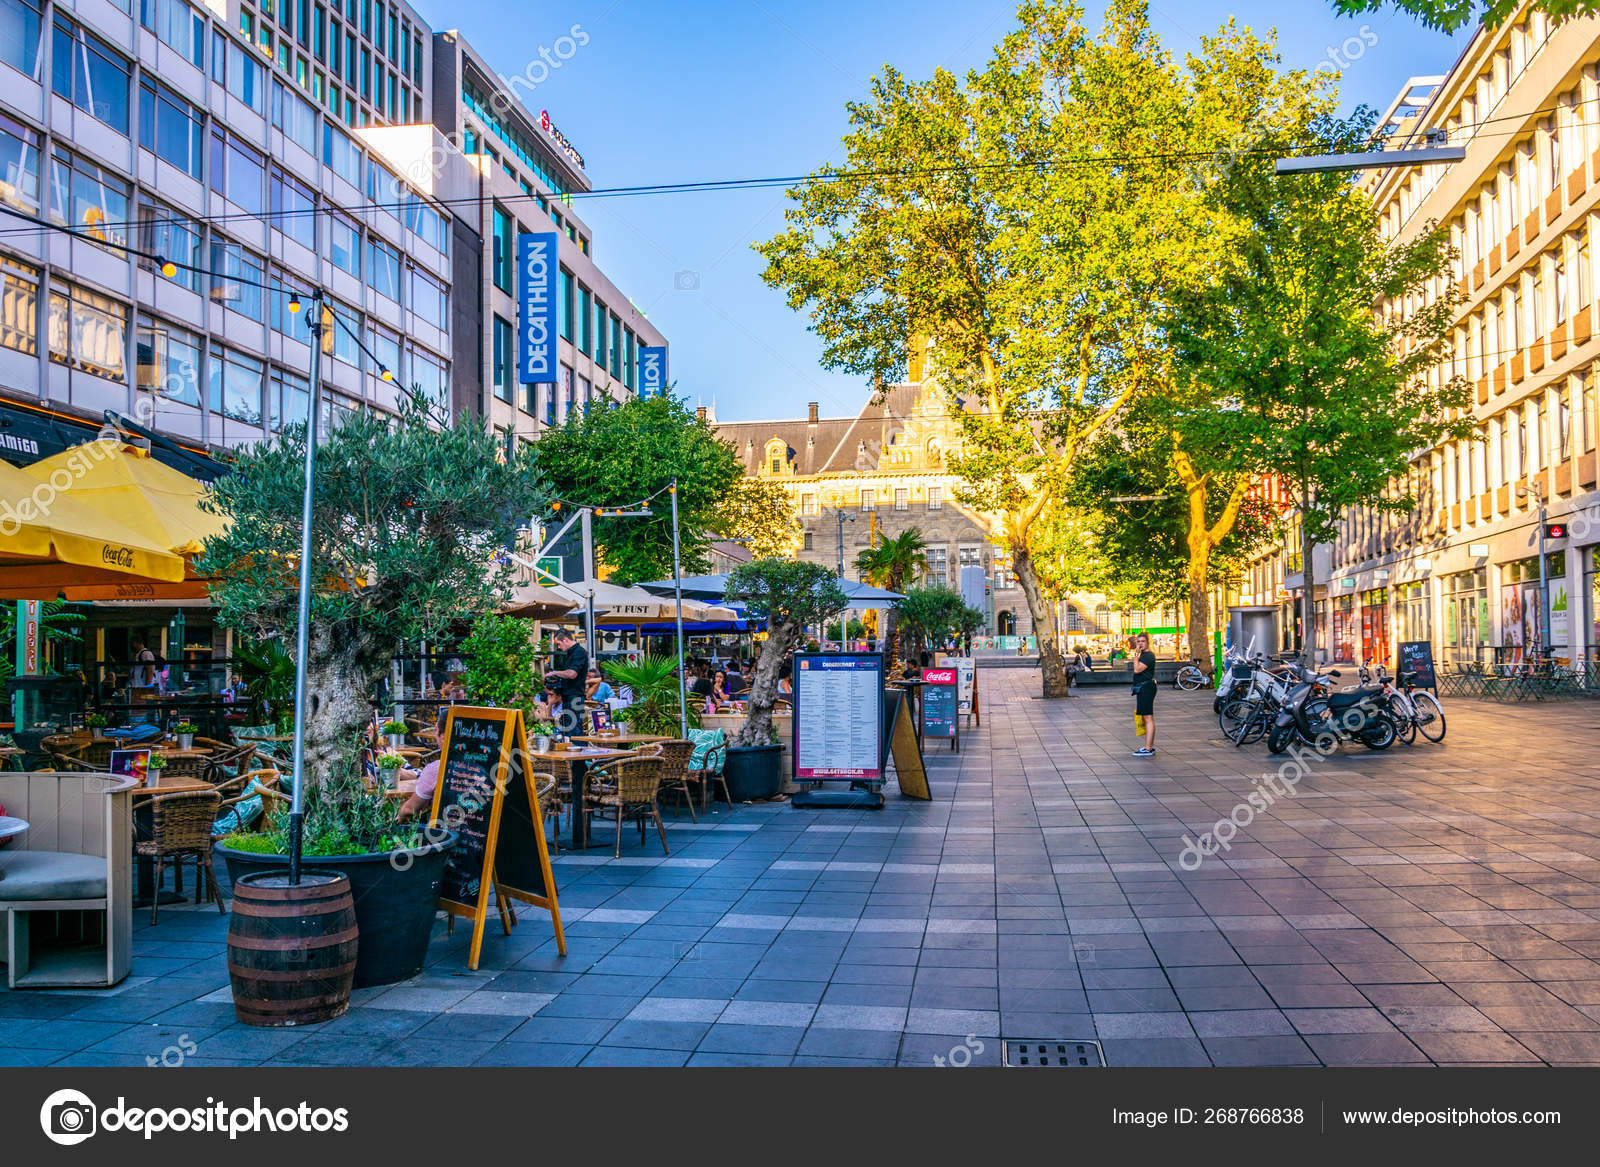 ROTTERDAM, NETHERLANDS, AUGUST 5, 2018: View of a shopping